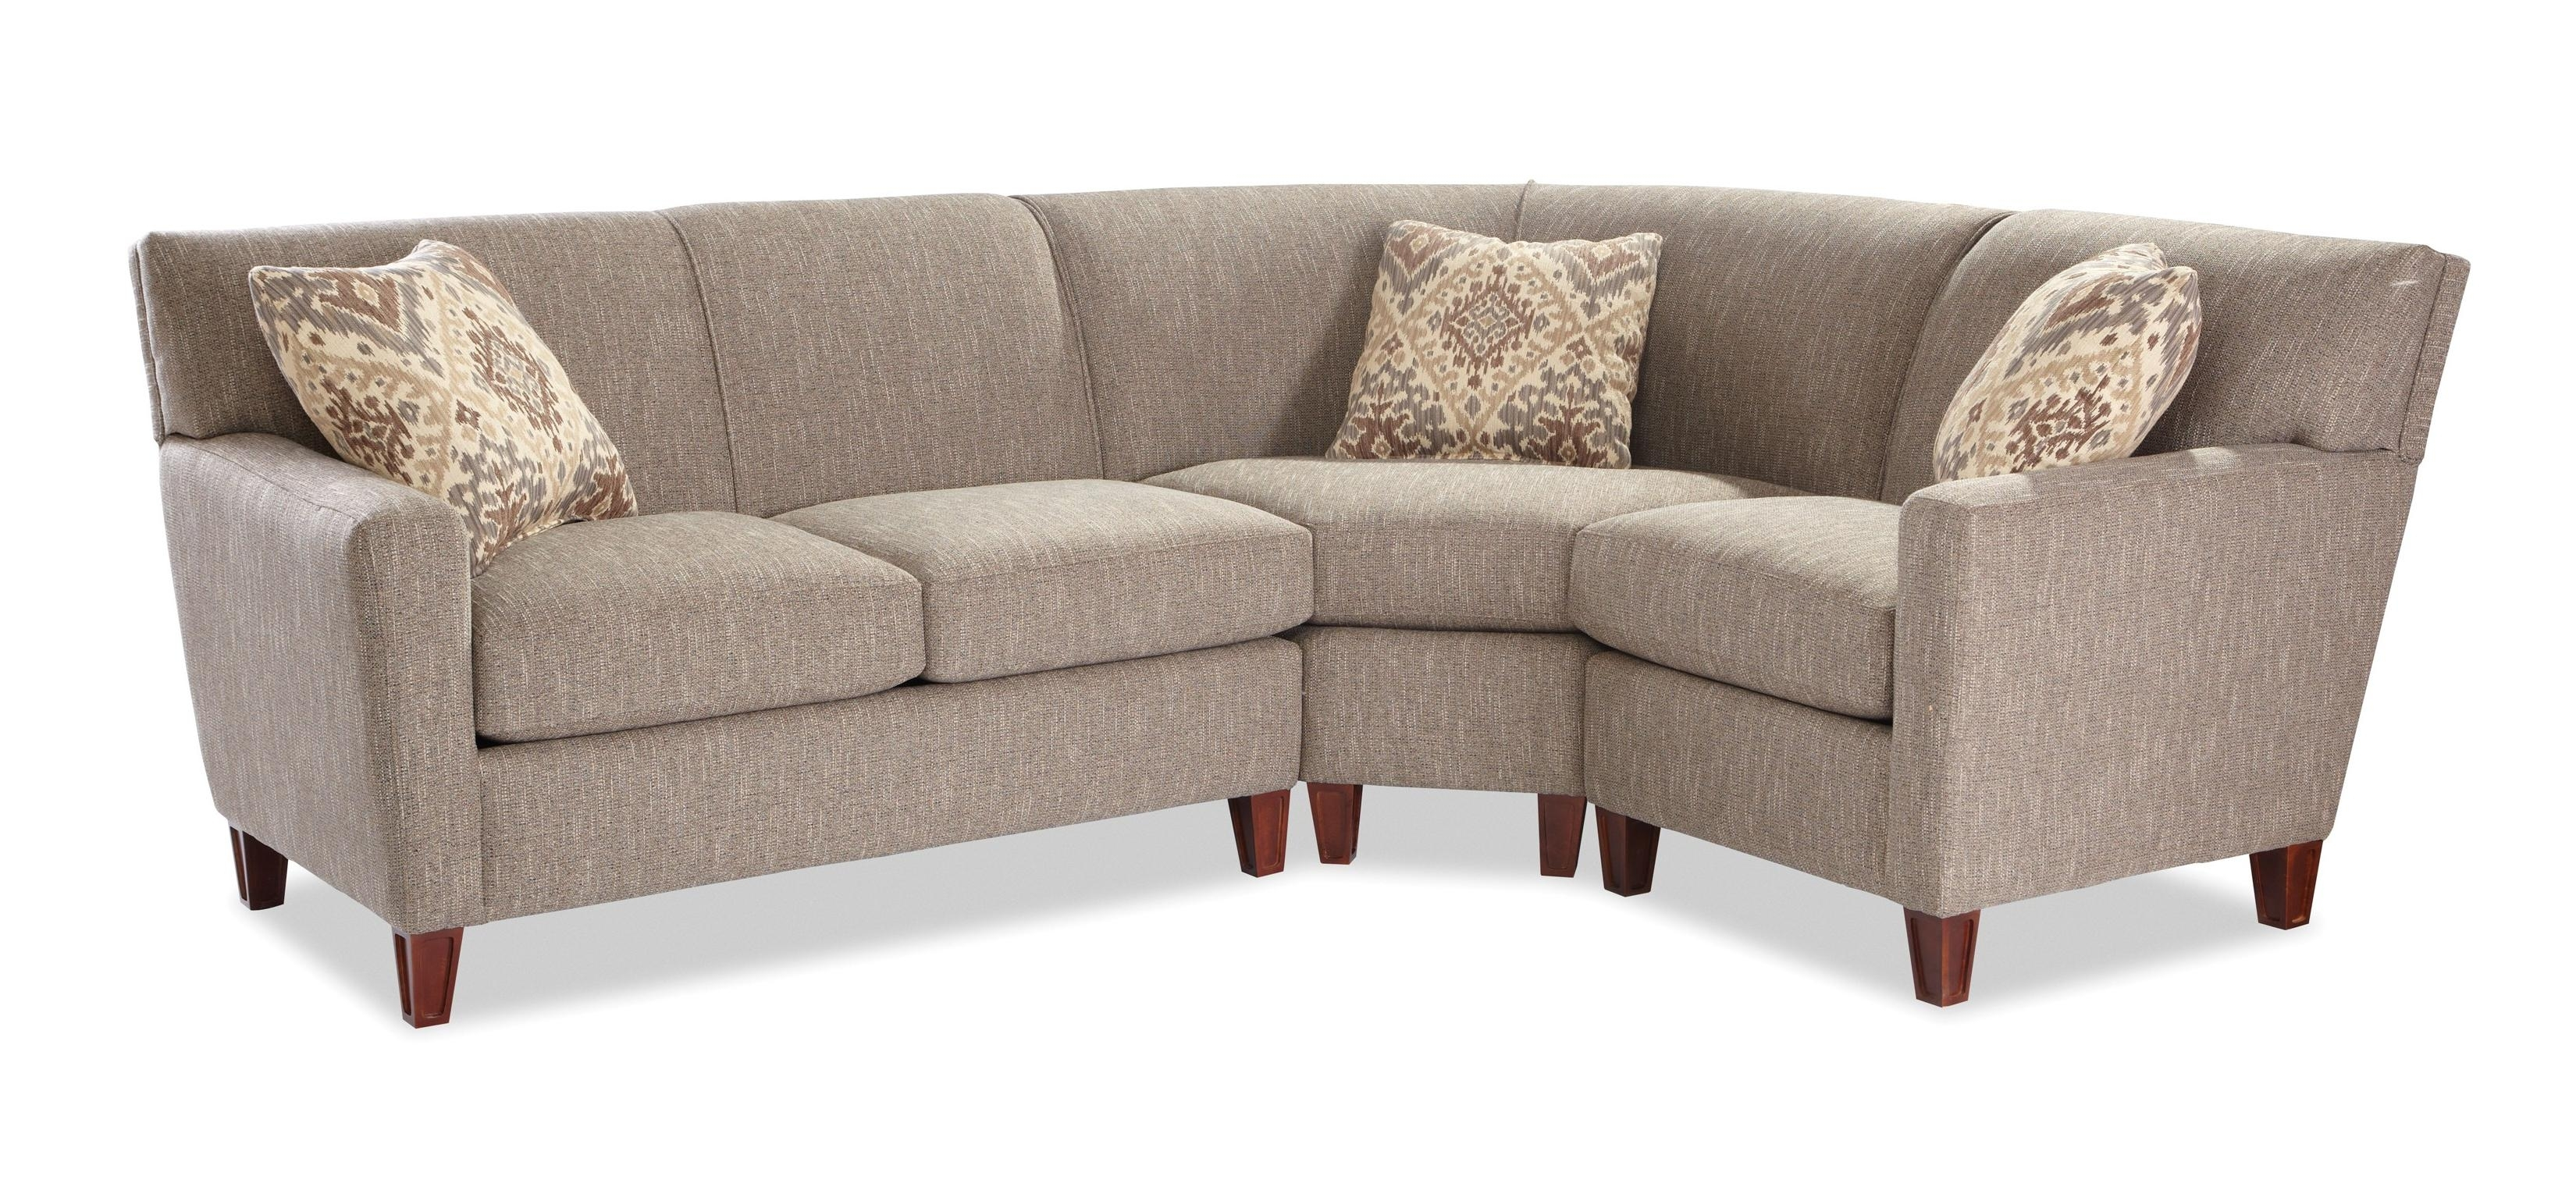 Craftmaster 7864 Three Piece Sectional Sofa With Laf Loveseat Regarding Blaine 4 Piece Sectionals (Image 6 of 25)